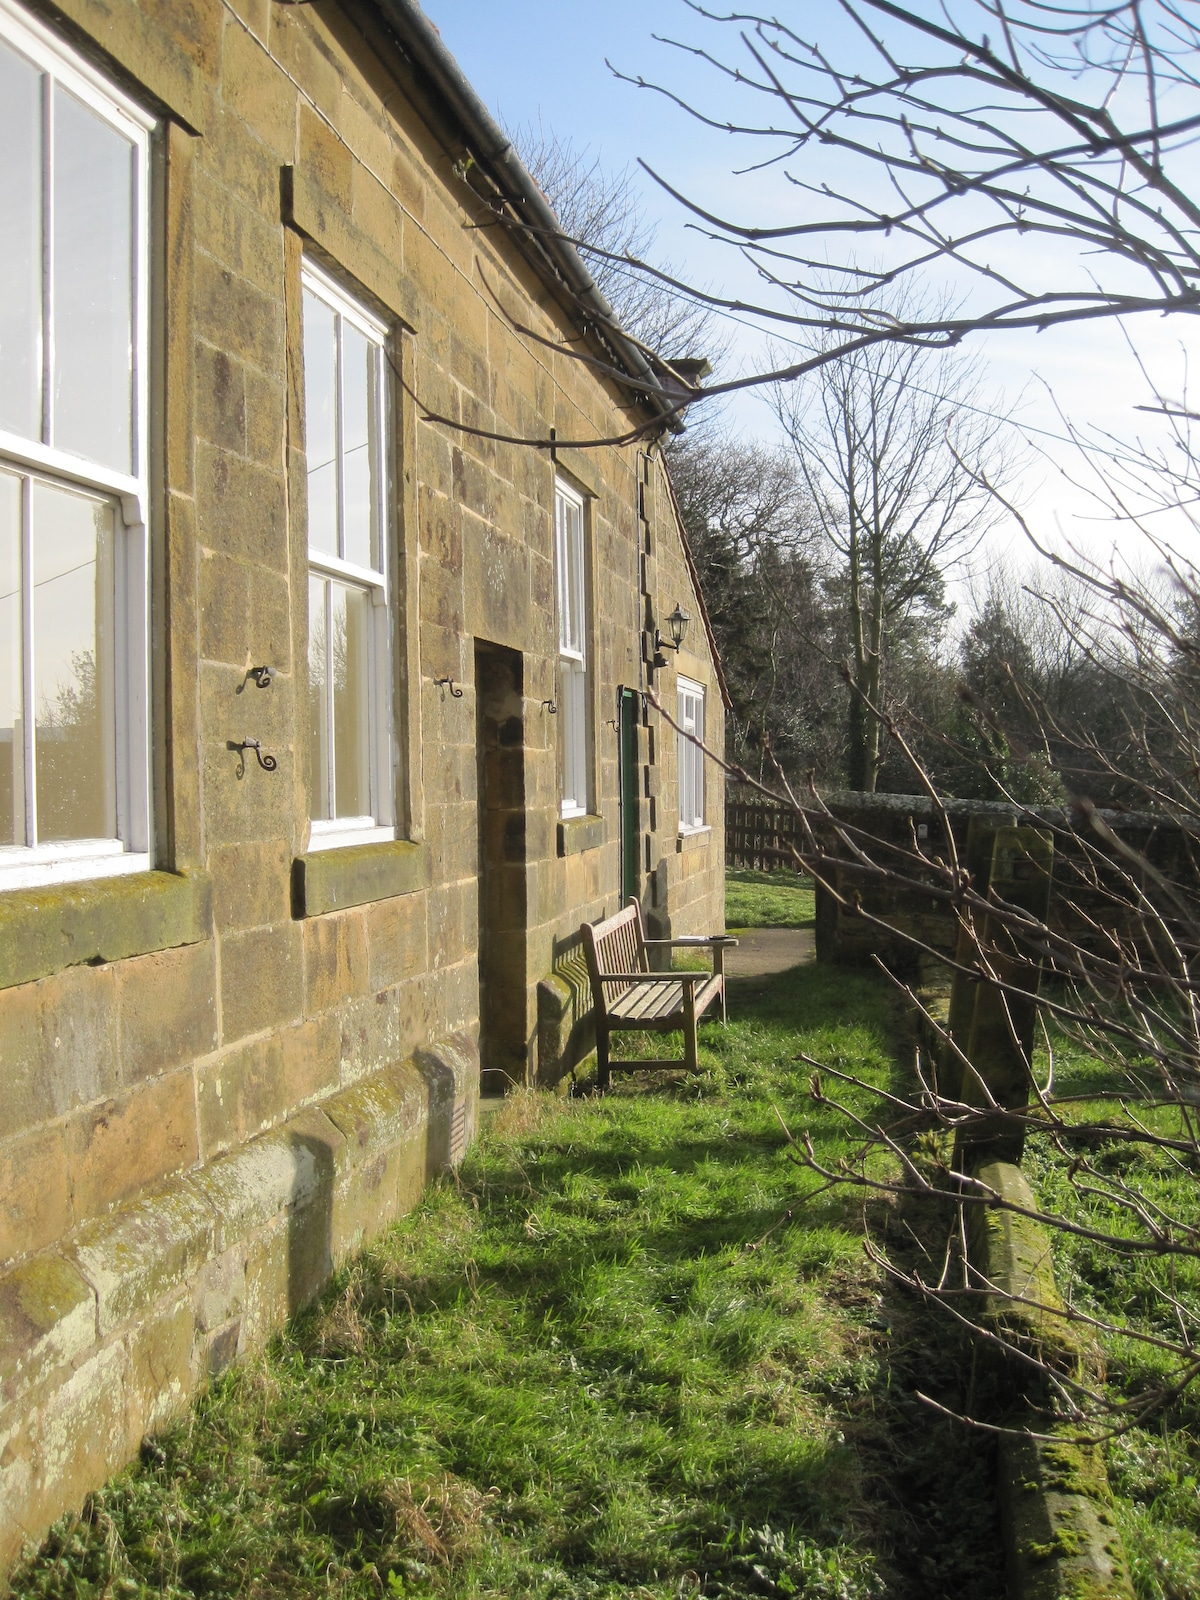 Beautiful tranquil setting with views across the rooftops to the moors